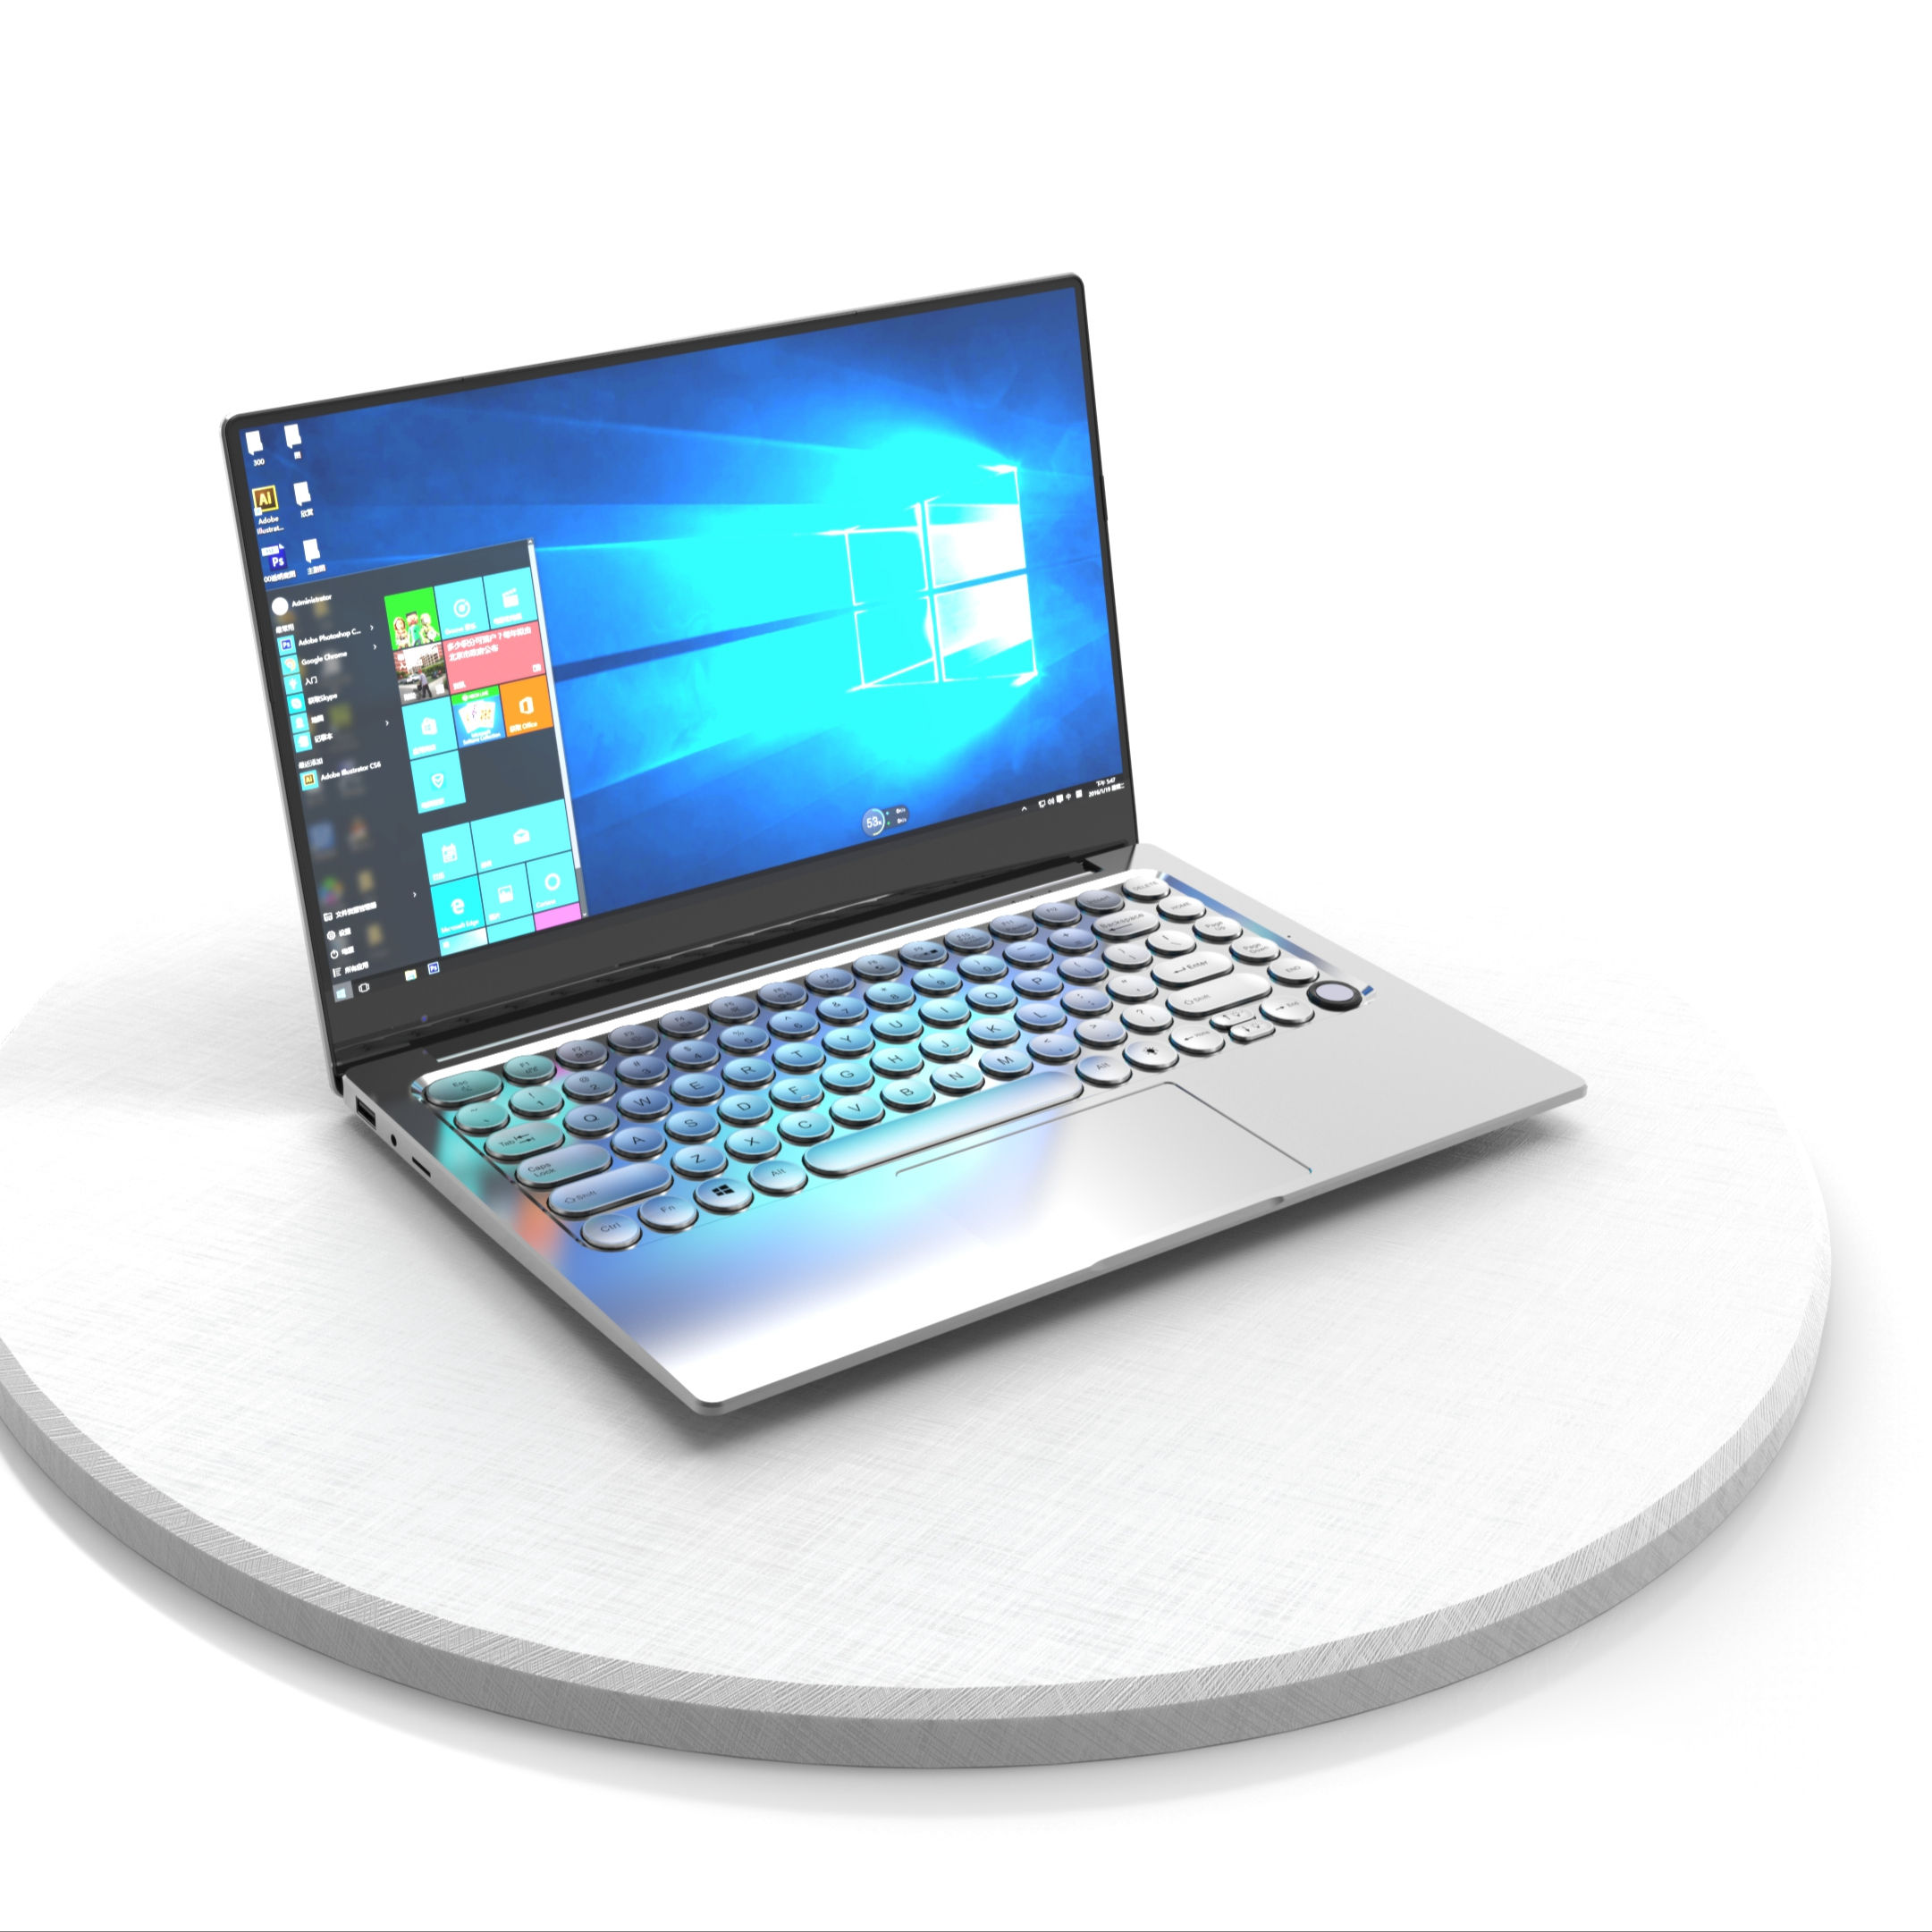 Hot selling 14 inch intel 3867u toposh laptop notebook computer with backlit keyboard num unlock in stock